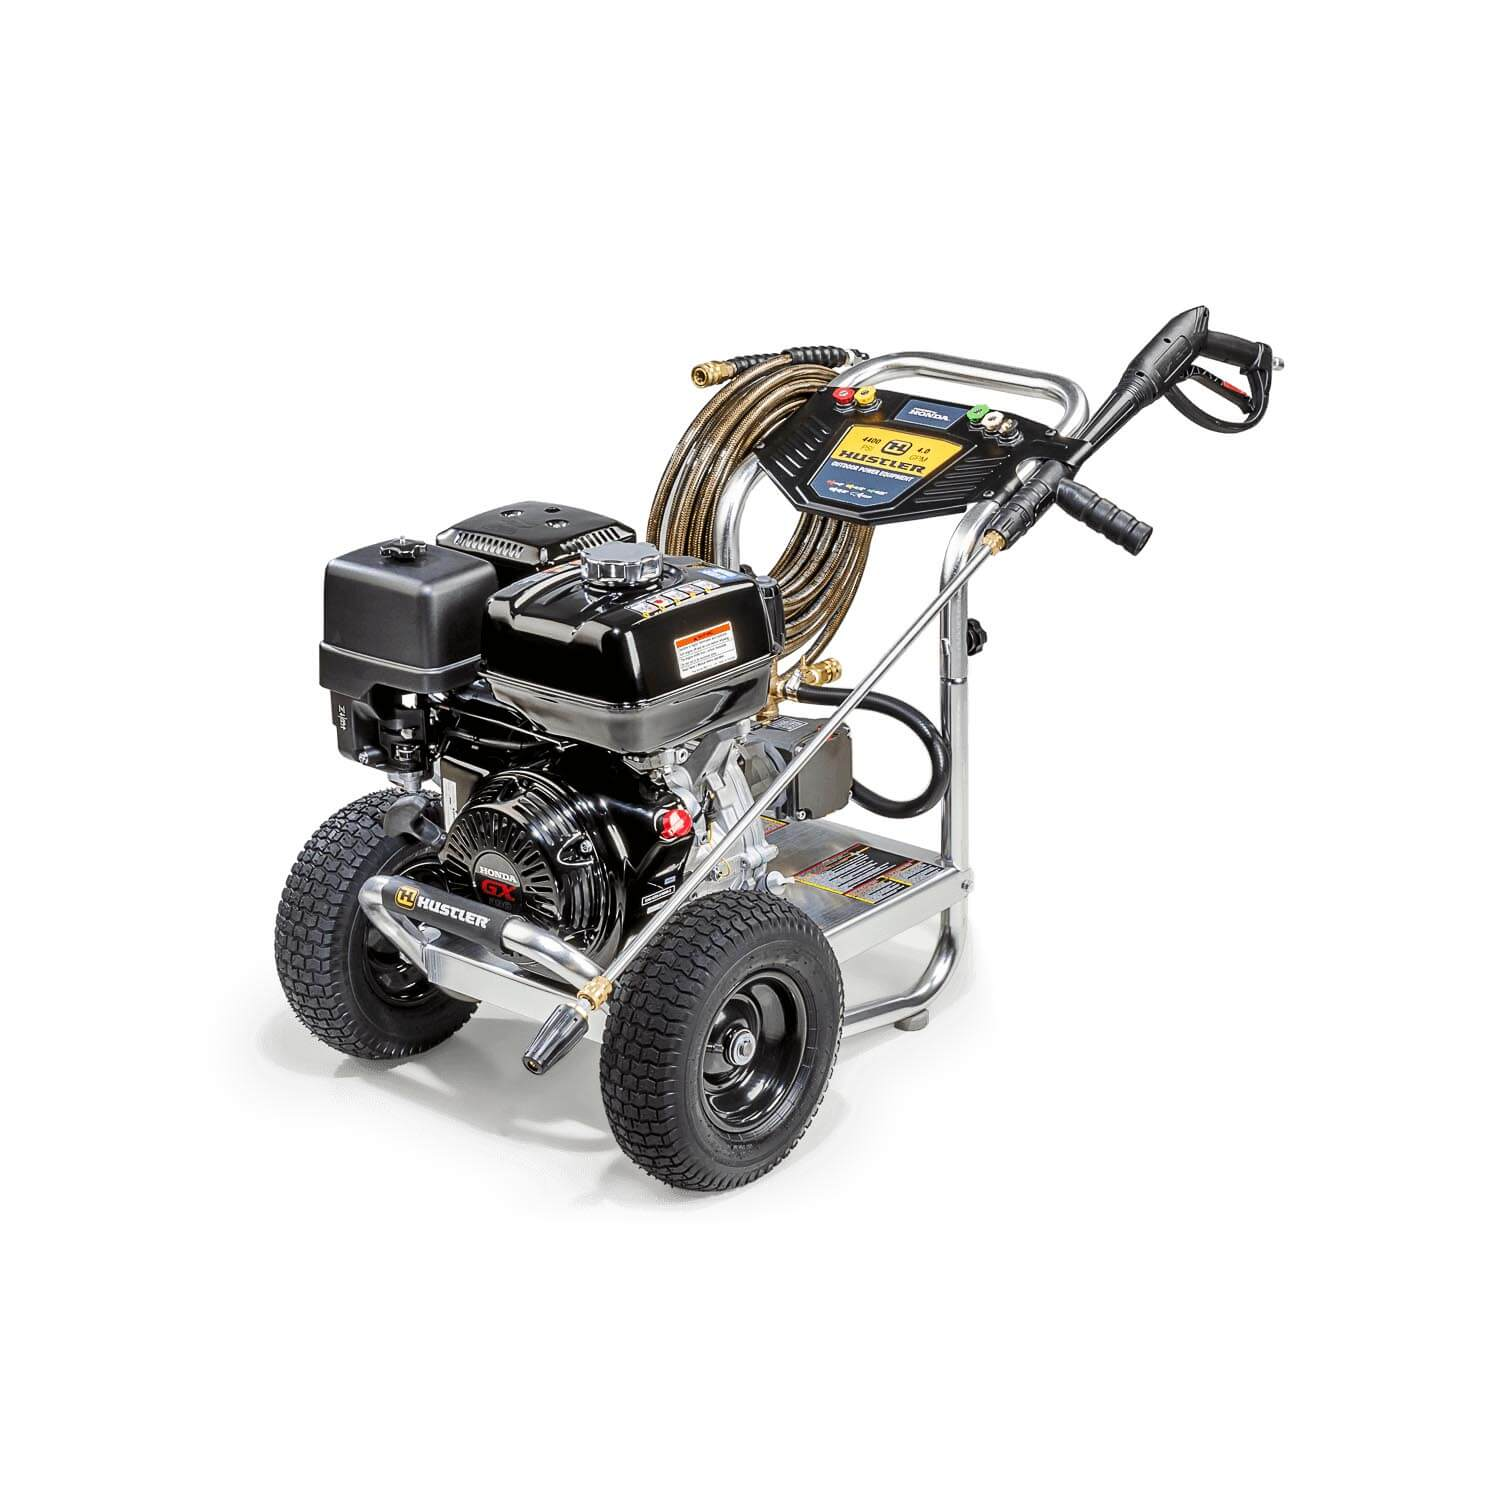 Hustler Power Washer HH4440